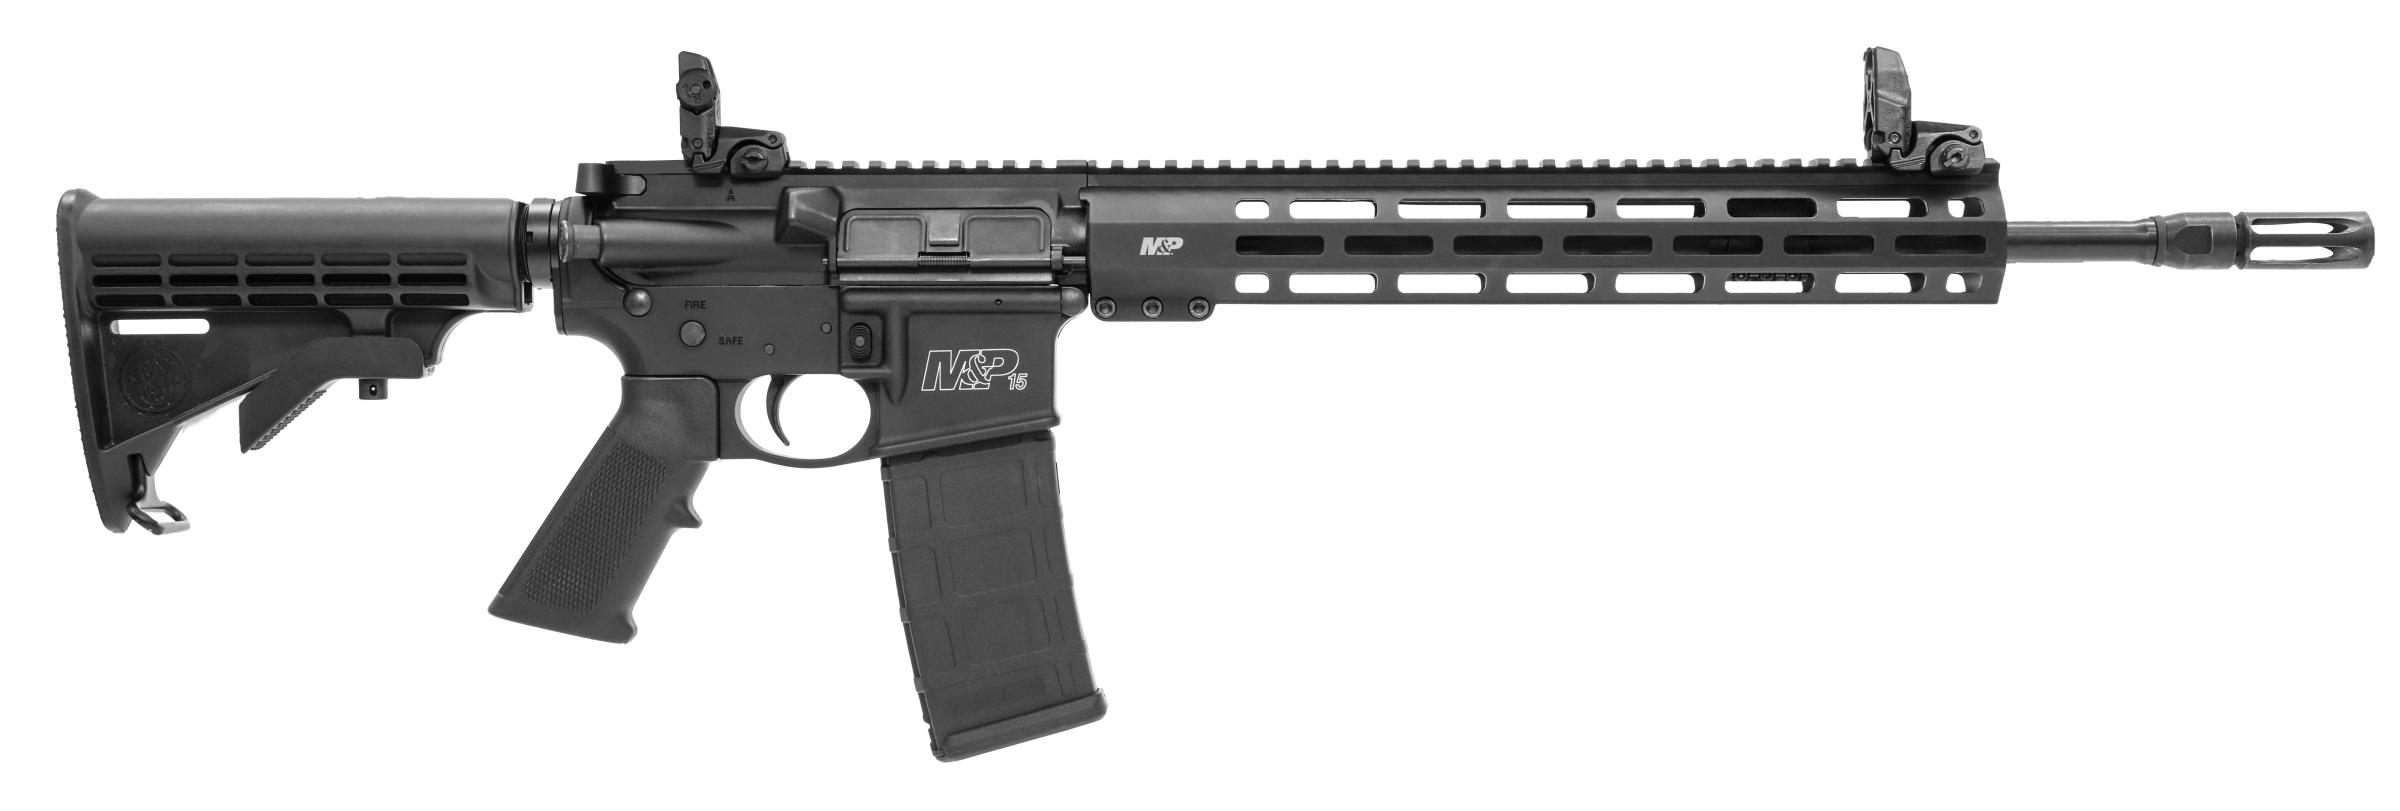 Smith and Wesson M&P15T 223 REM   5.56 NATO